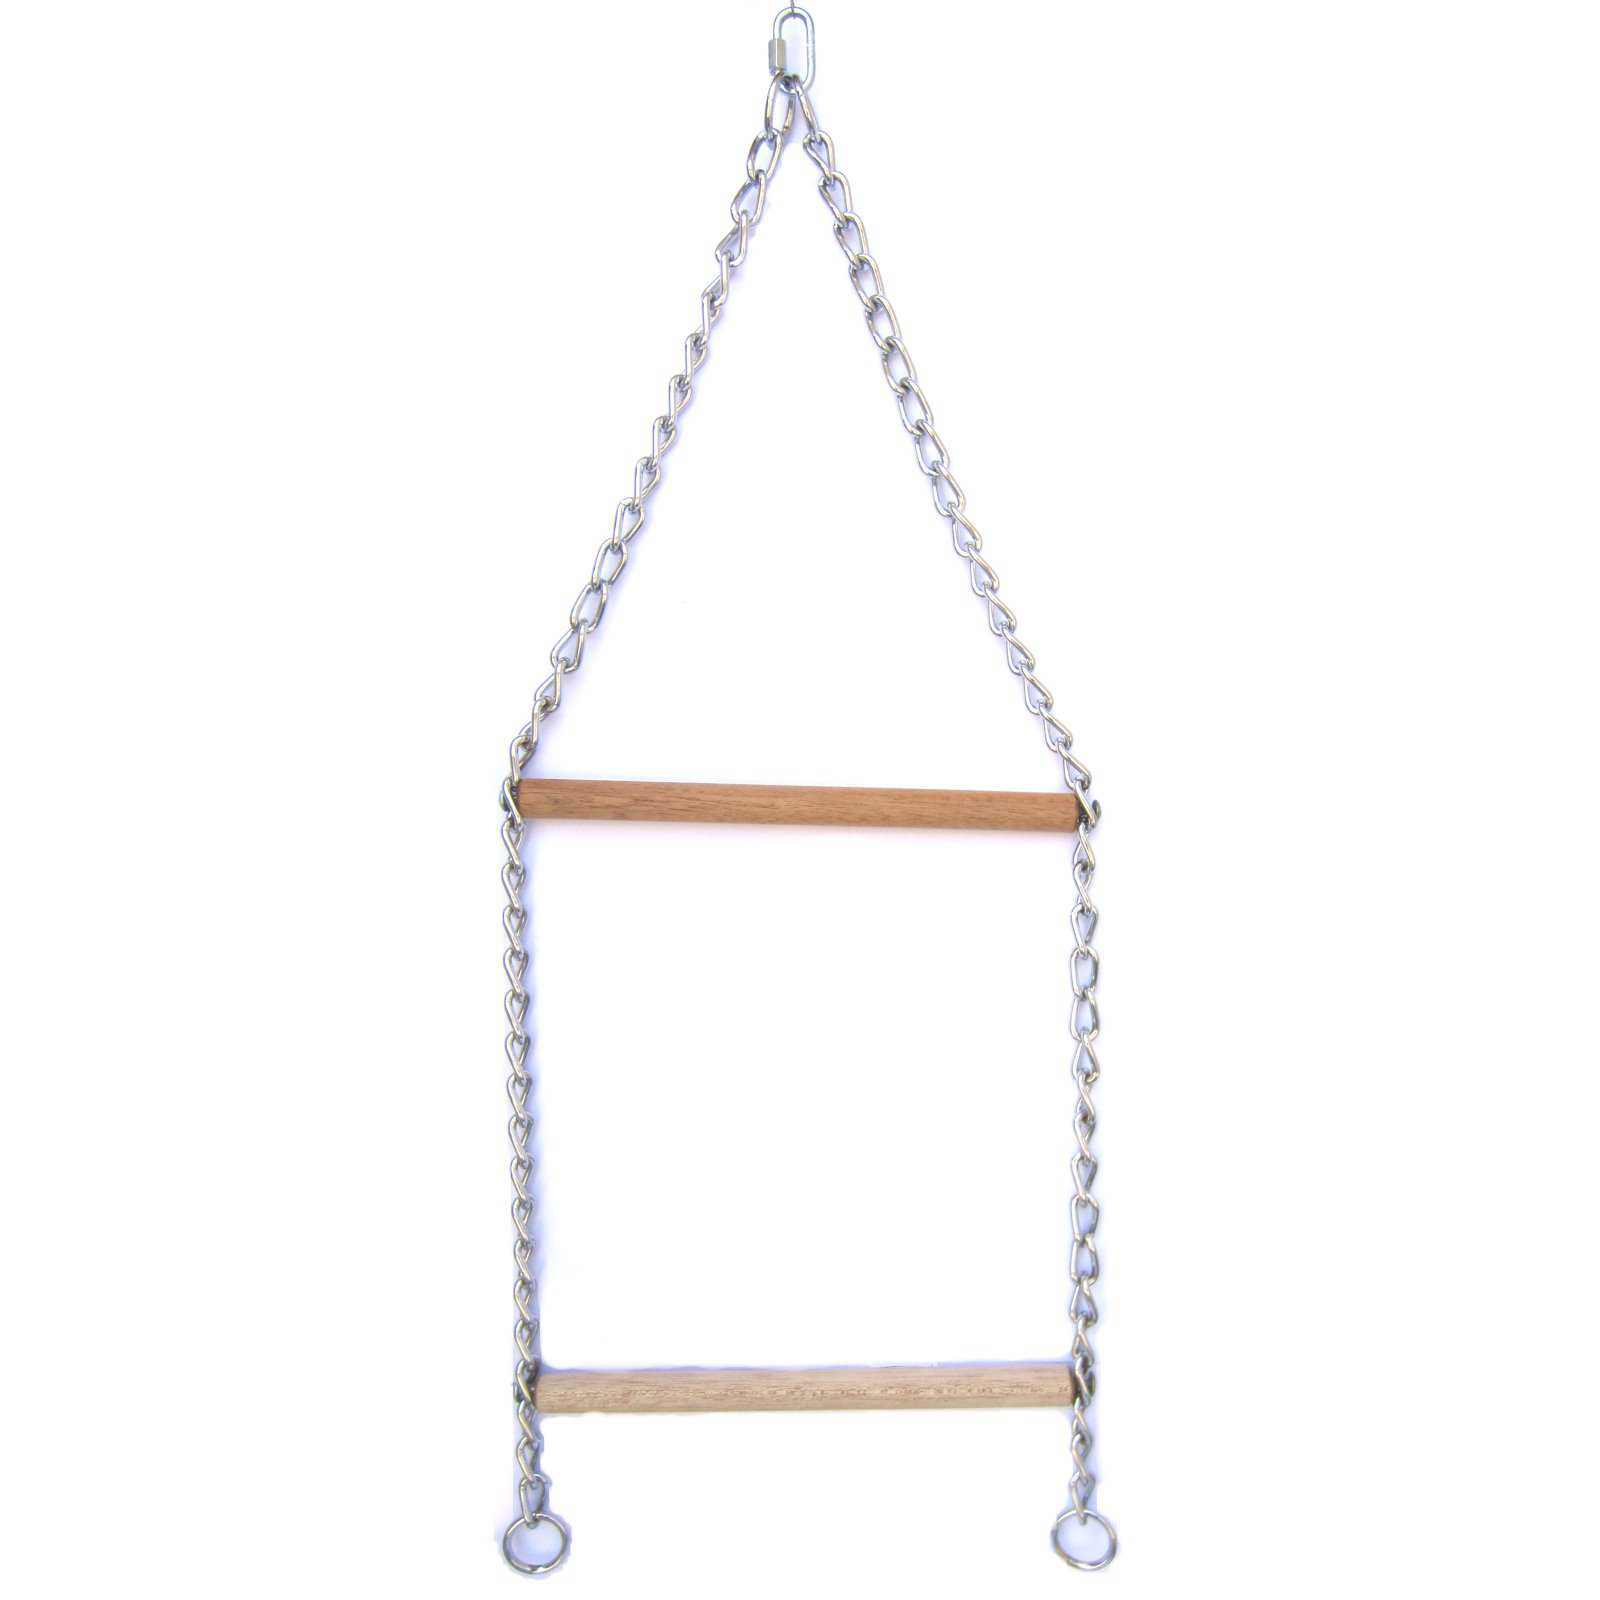 BT Perch Chain Ladder Toy - BT2